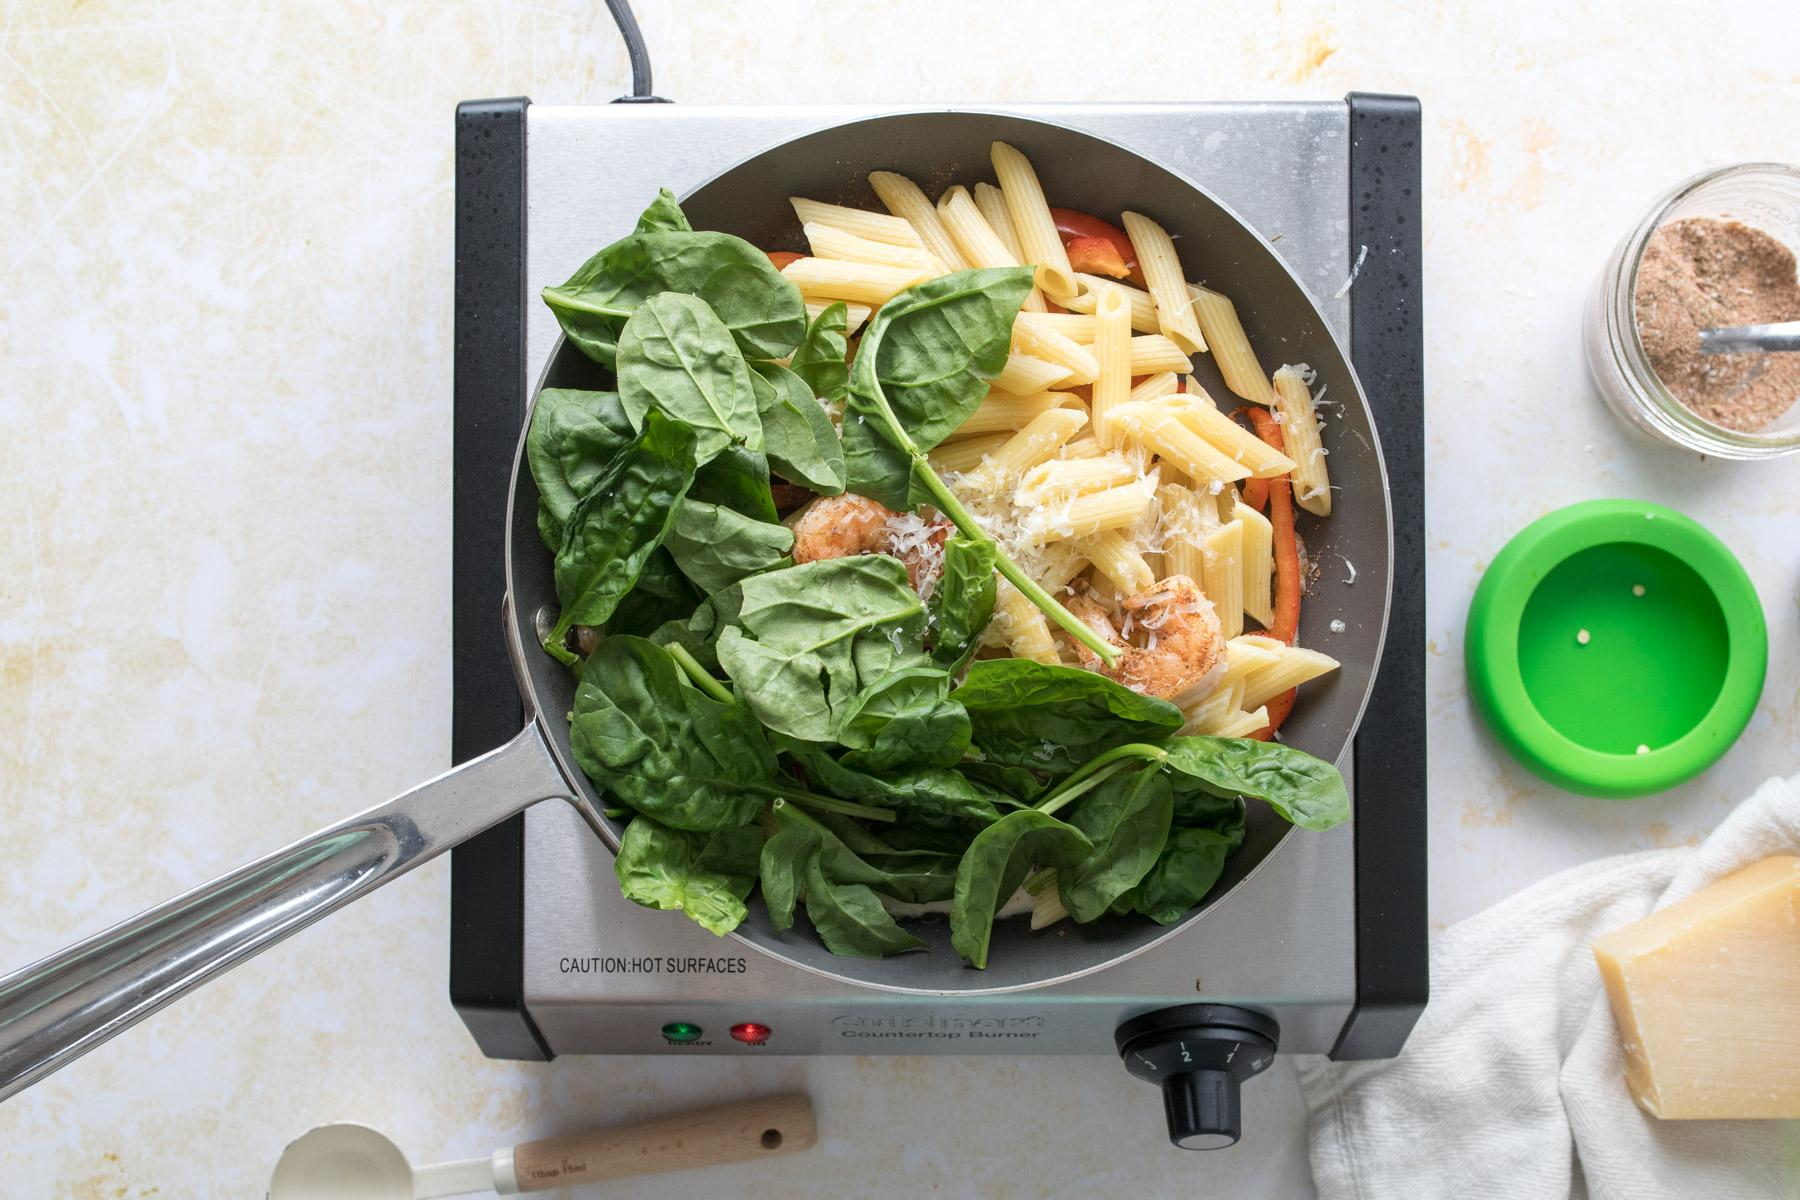 spinach, pasta, shrimp, and bell peppers in a skillet